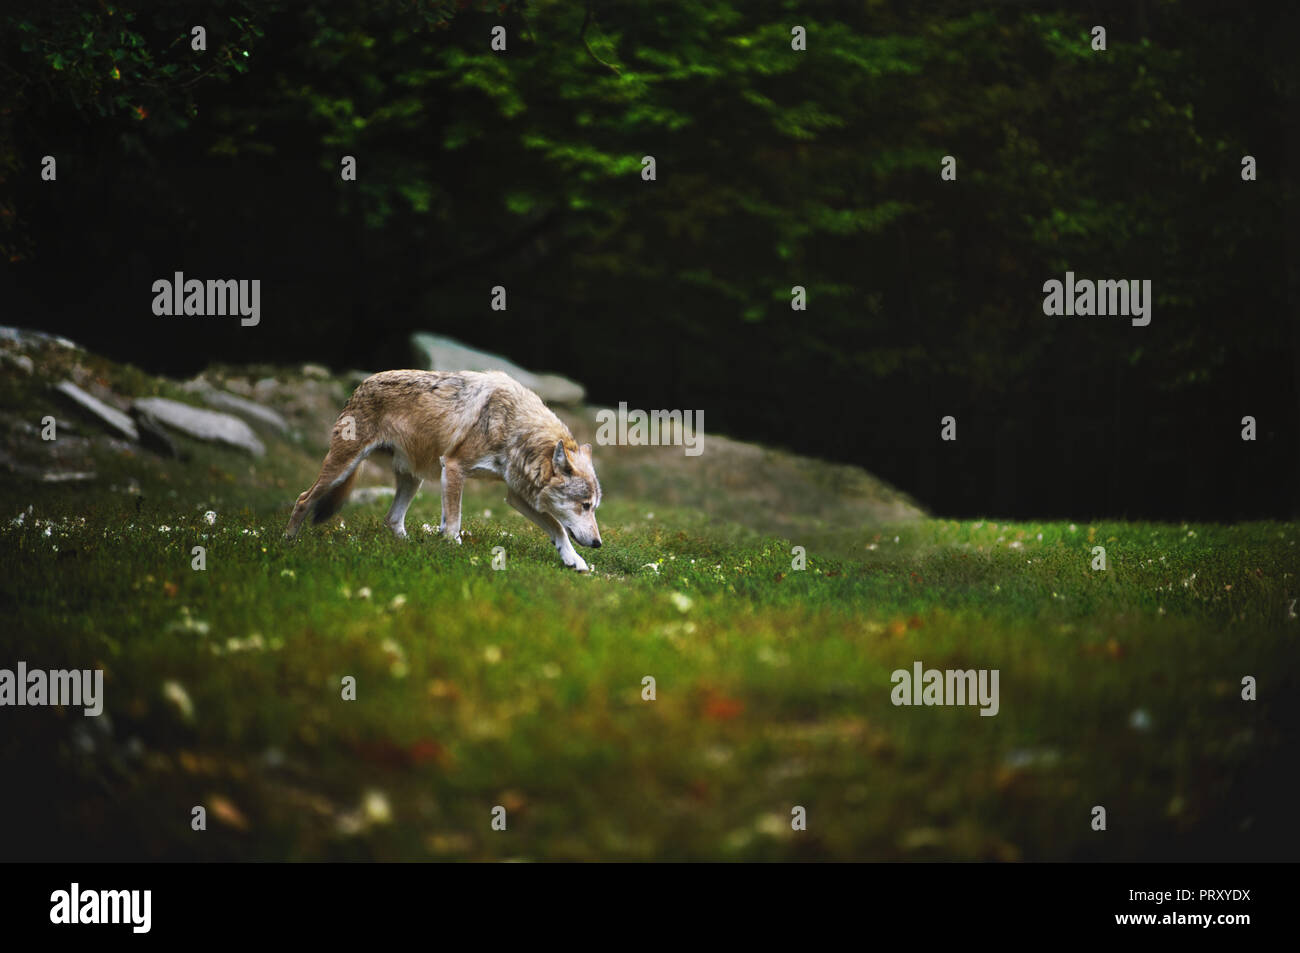 The Wolf walking and sniffing on meadow with dark forest on backround. Canadian Timber Wolf in motion. - Stock Image